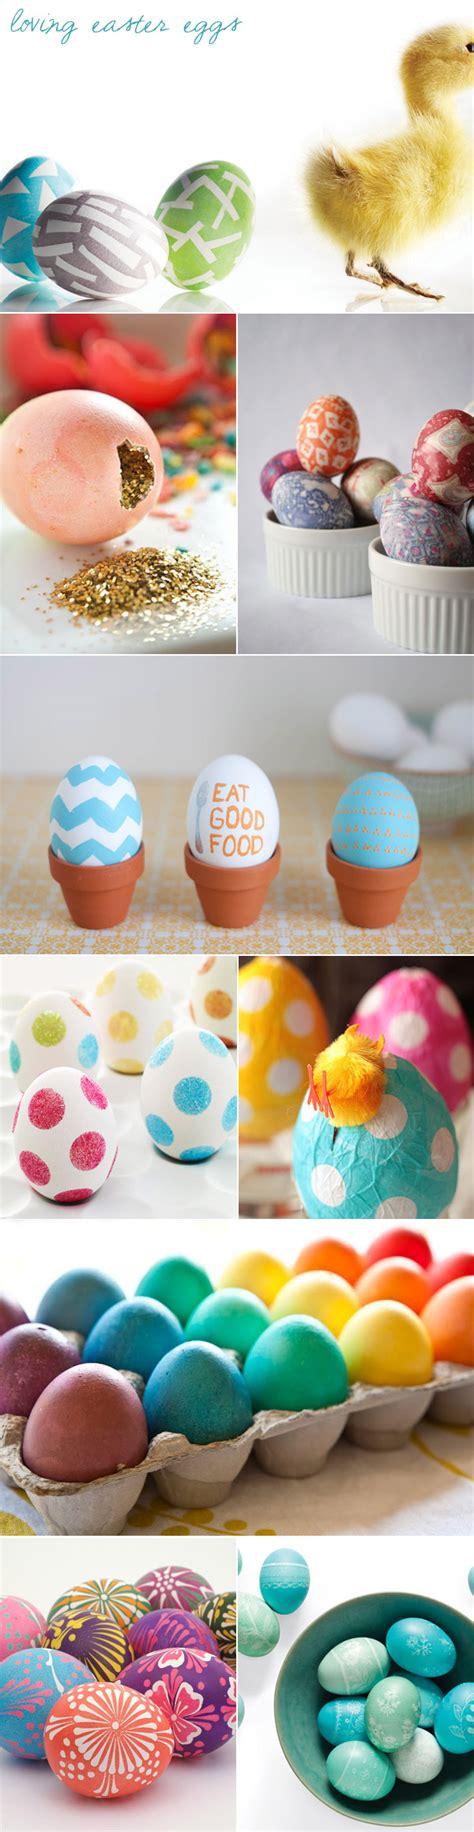 easter eggs ideas loving easter eggs the sweetest occasion the sweetest